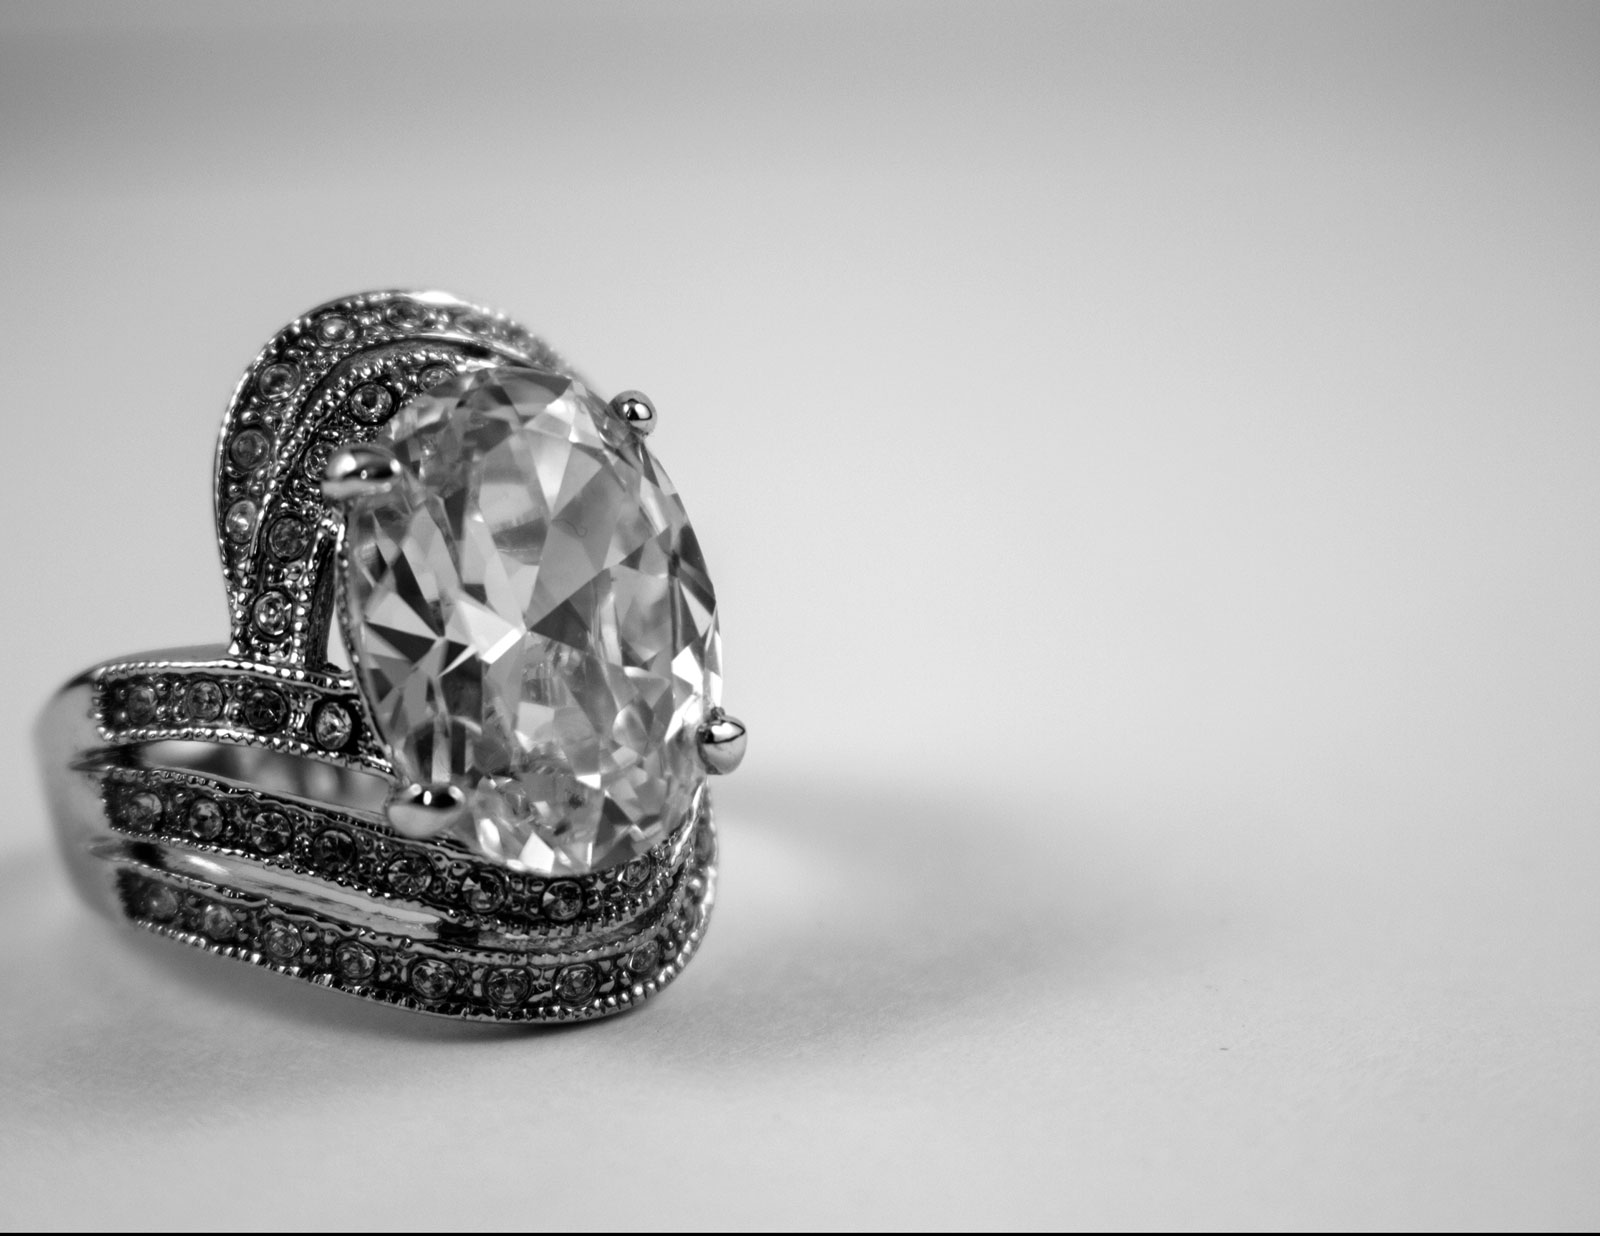 Ring   Is There Any Real Value To Cubic Zirconia?